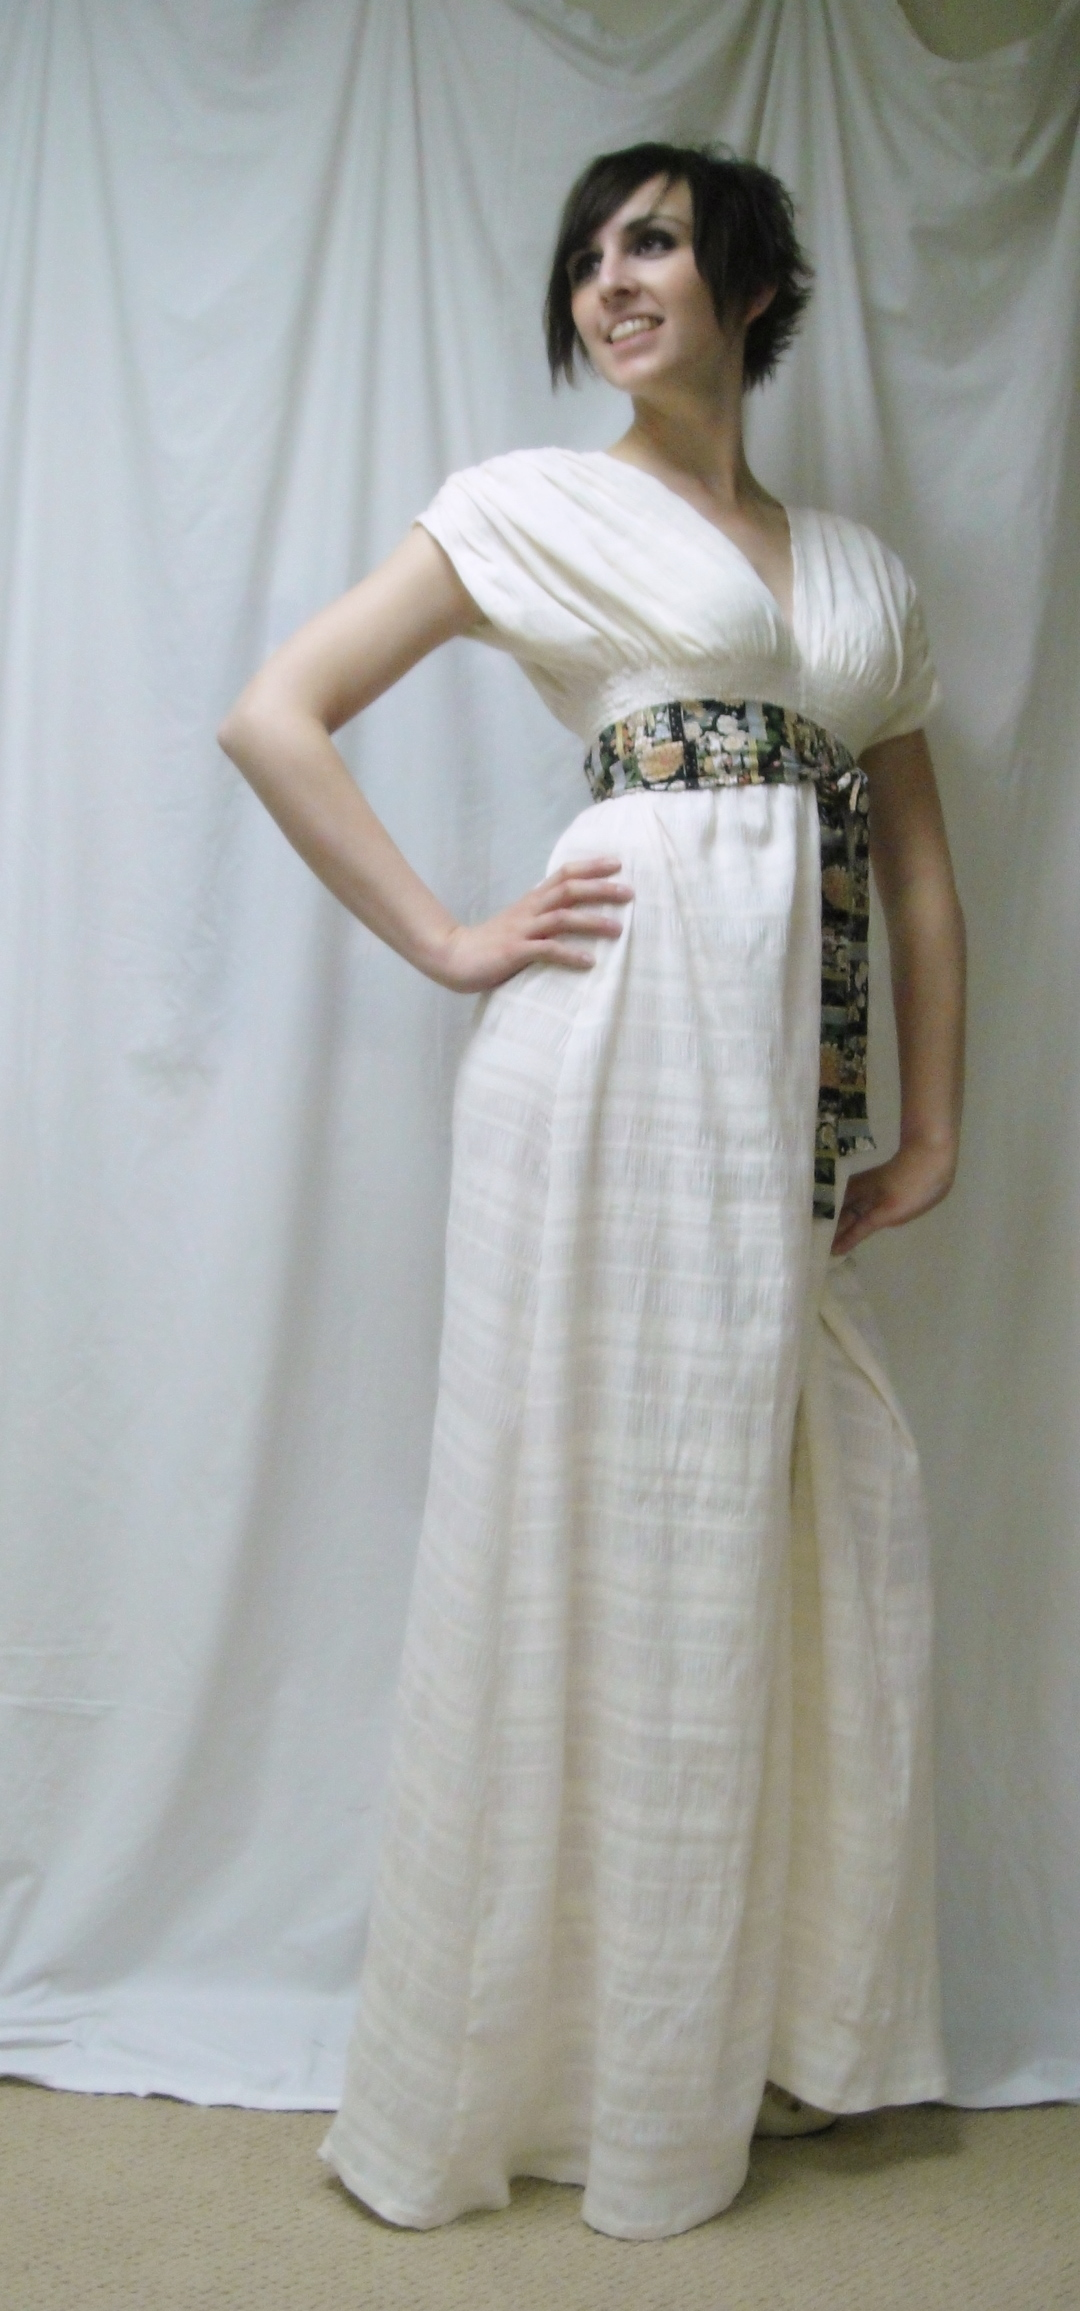 The dress goddess - Front View